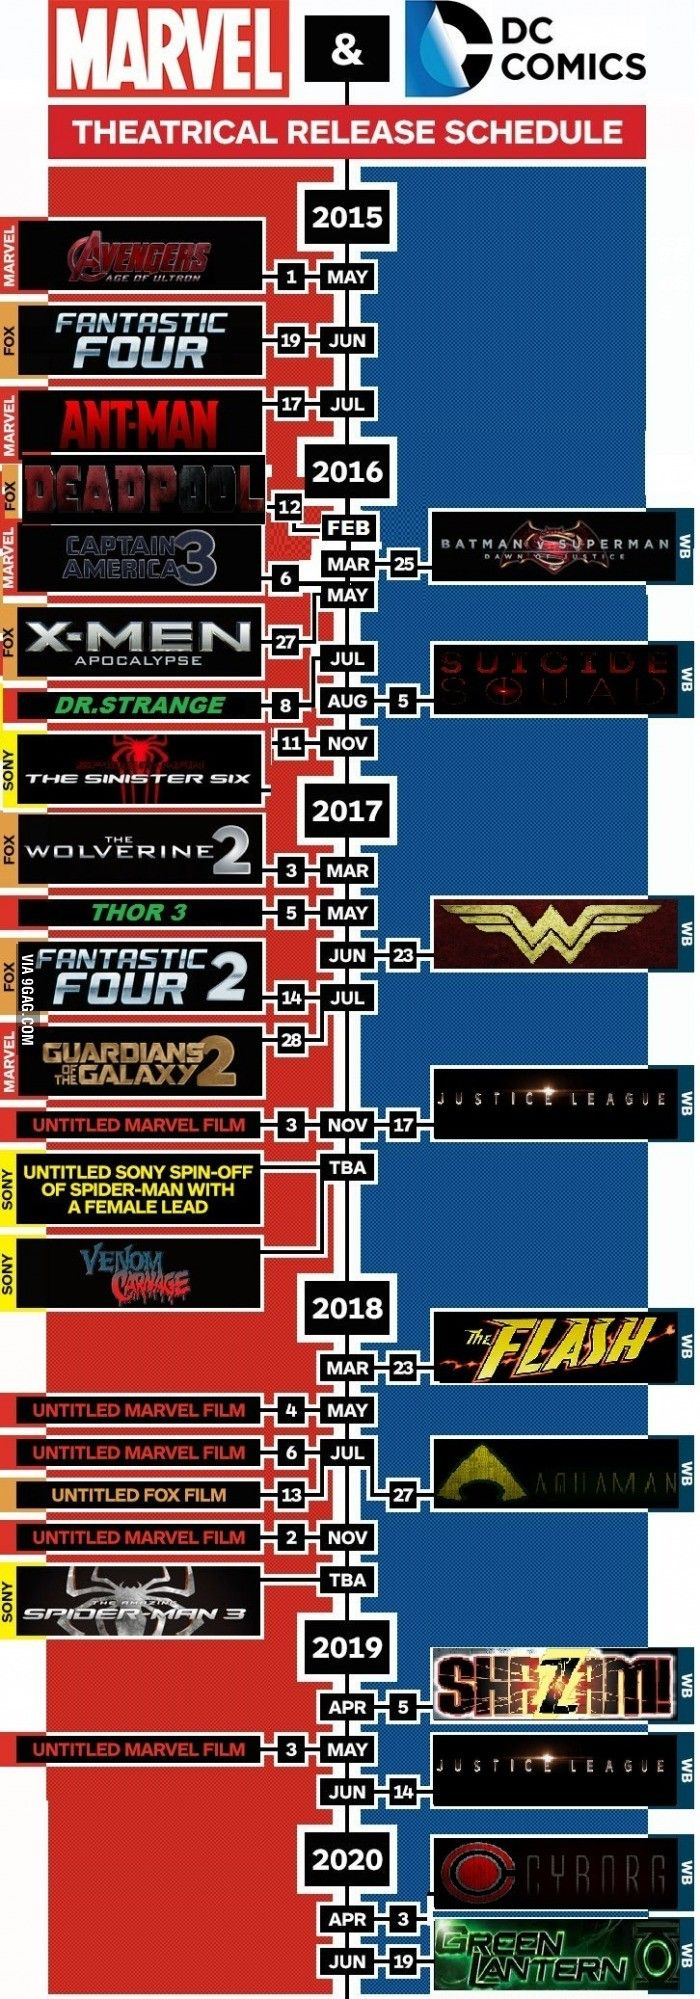 Marvel/DC planned movie releases.